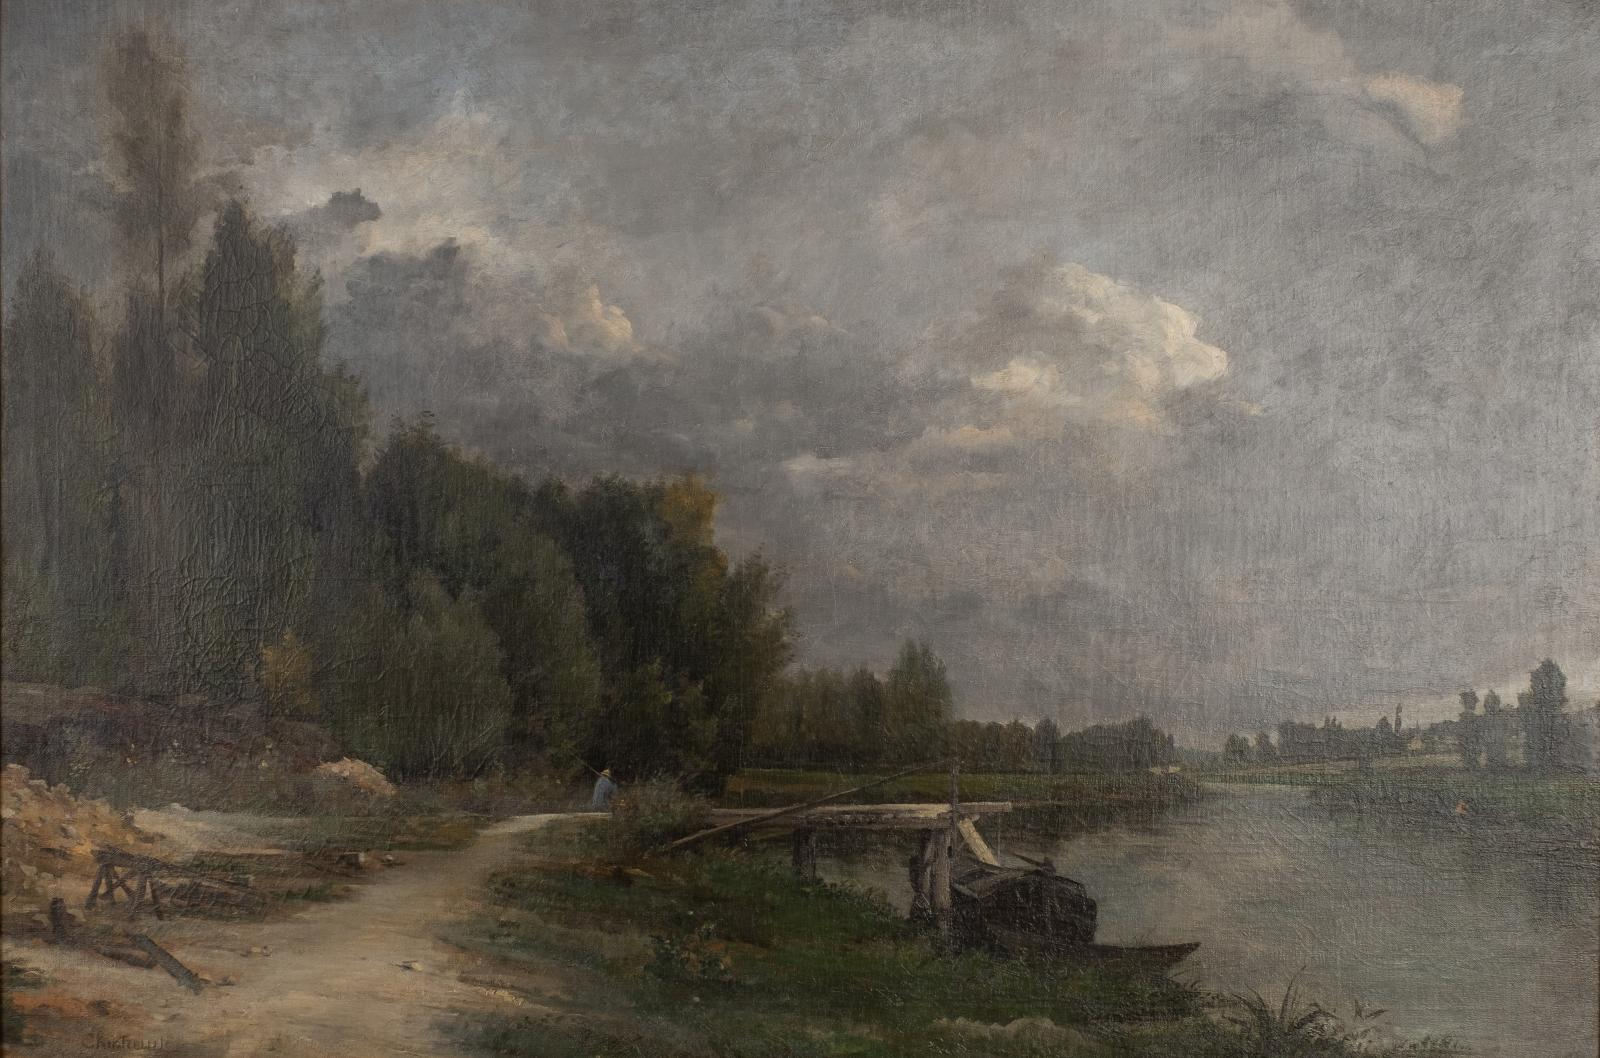 A moody painting of a landscape with a path along a river